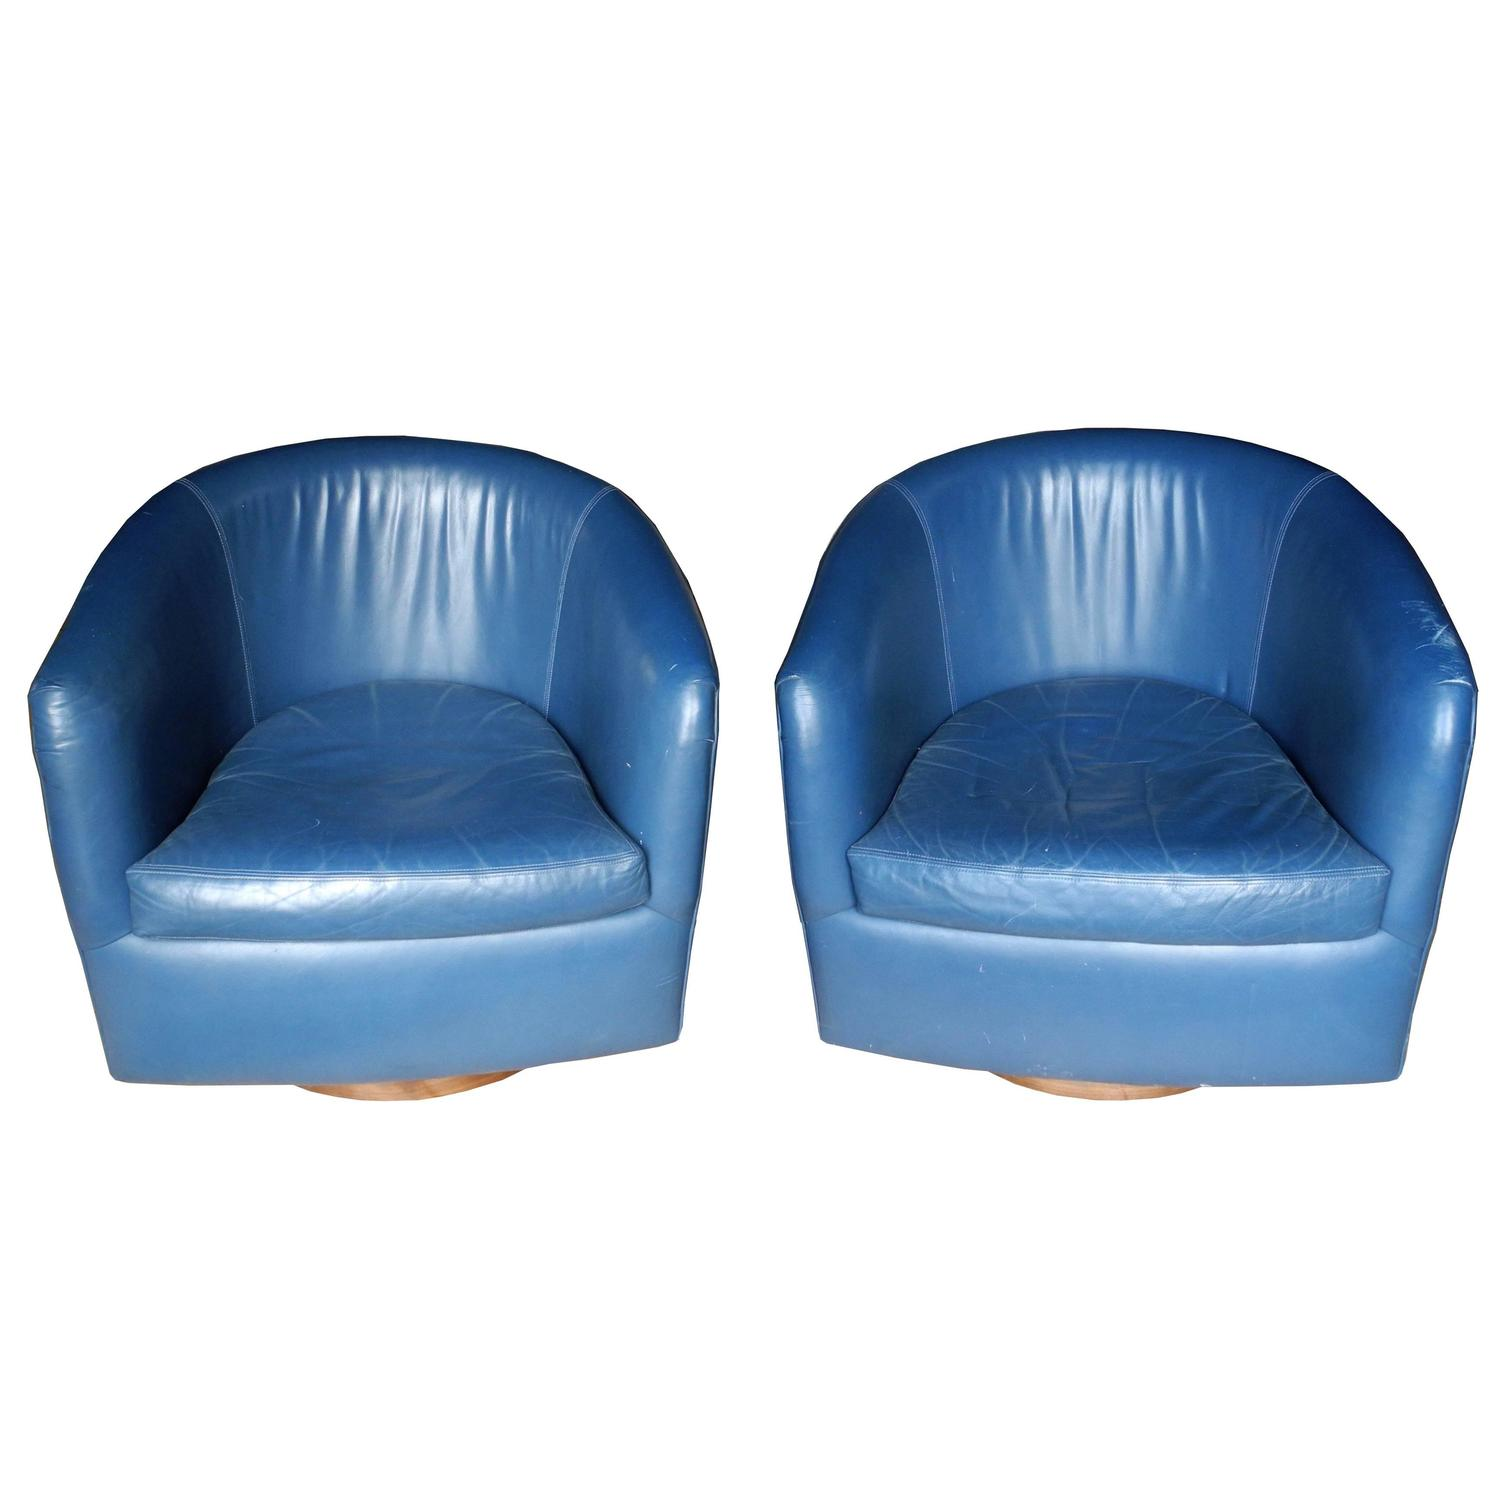 Pair of mid century modern blue leather swivel lounge chairs by milo